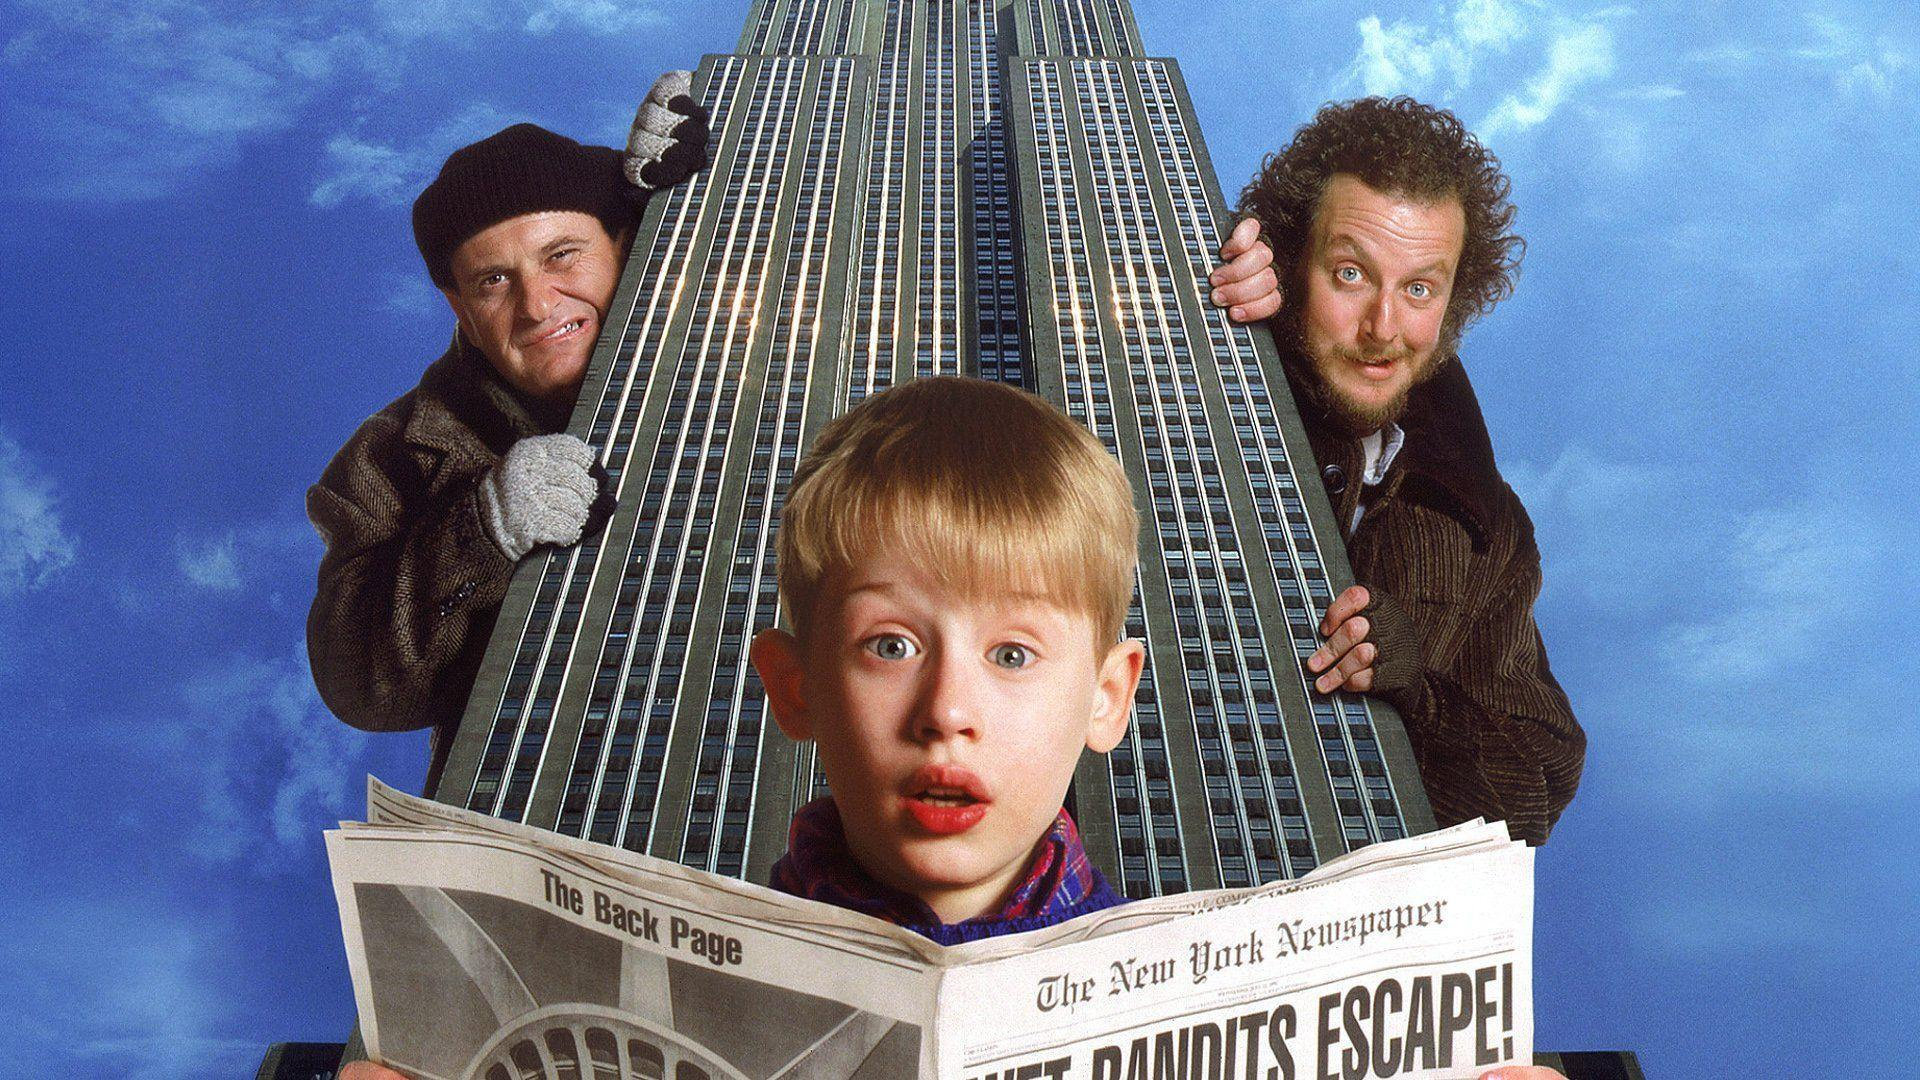 6 Home Alone HD Wallpapers